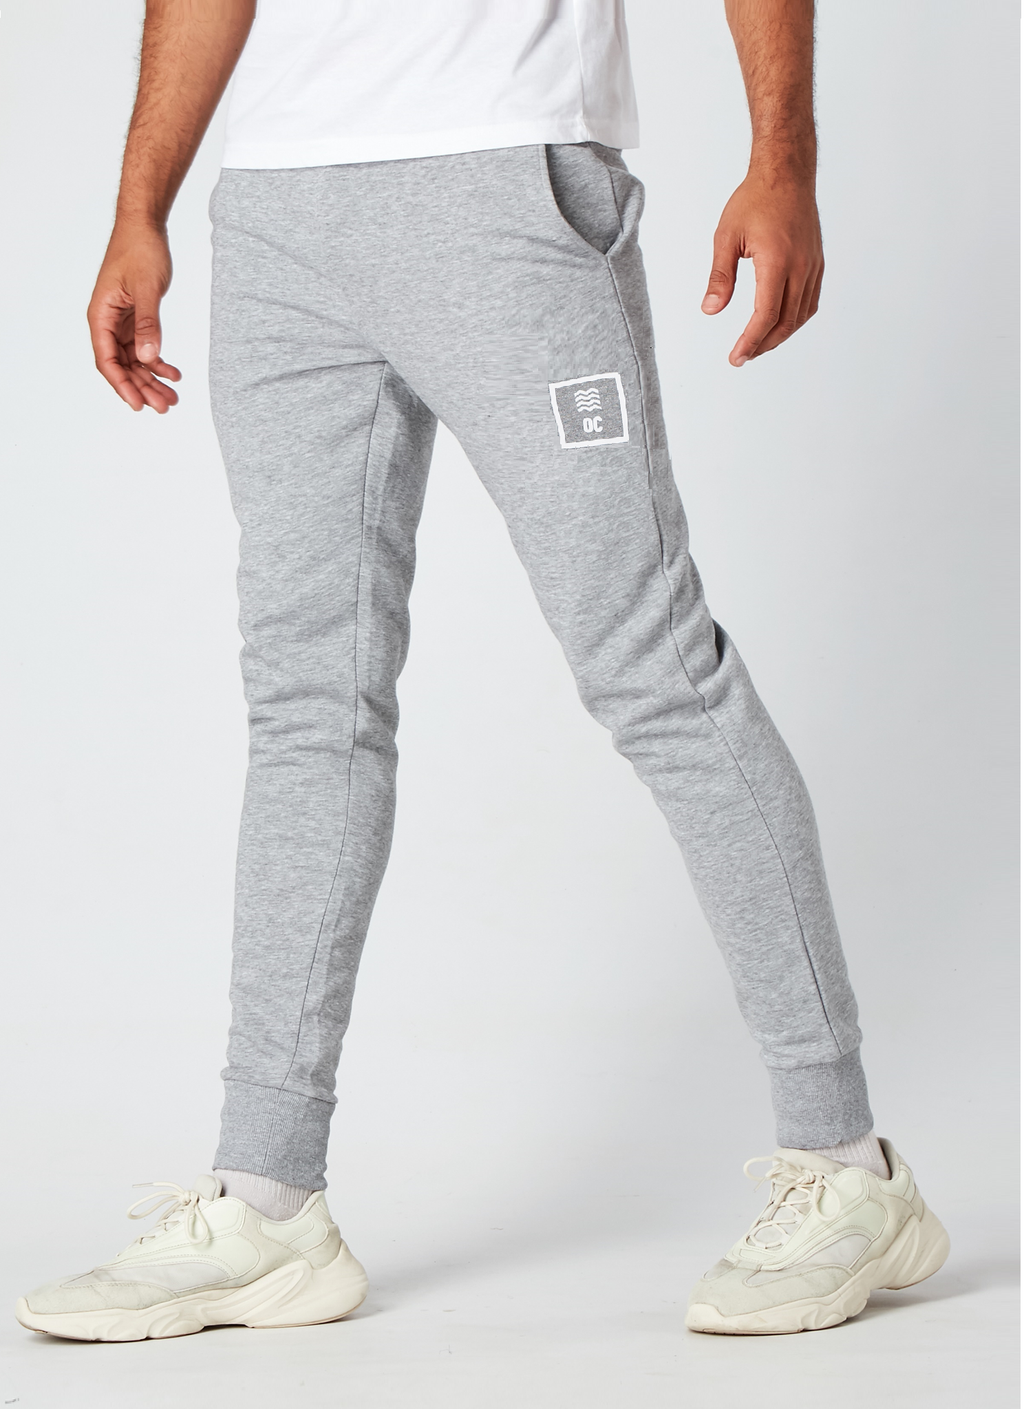 OC Slim Fit Grey Joggers